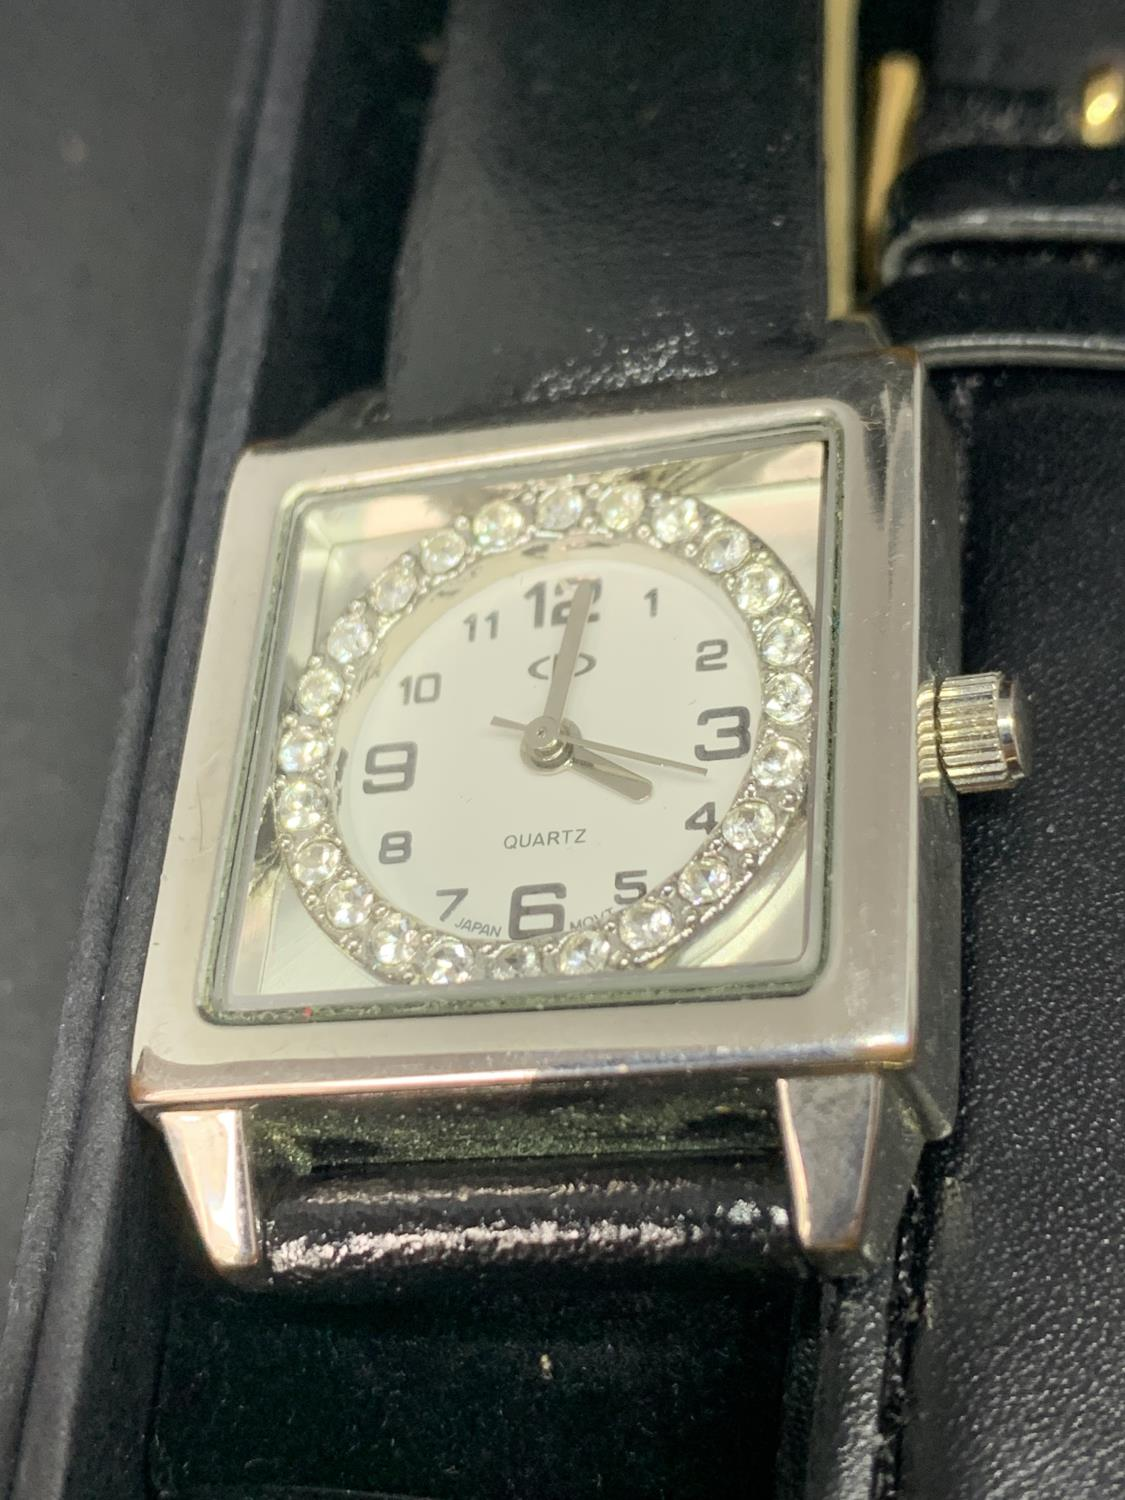 TWO WRISTWATCHES WITH BLACK LEATHER STRAPS - Image 3 of 3